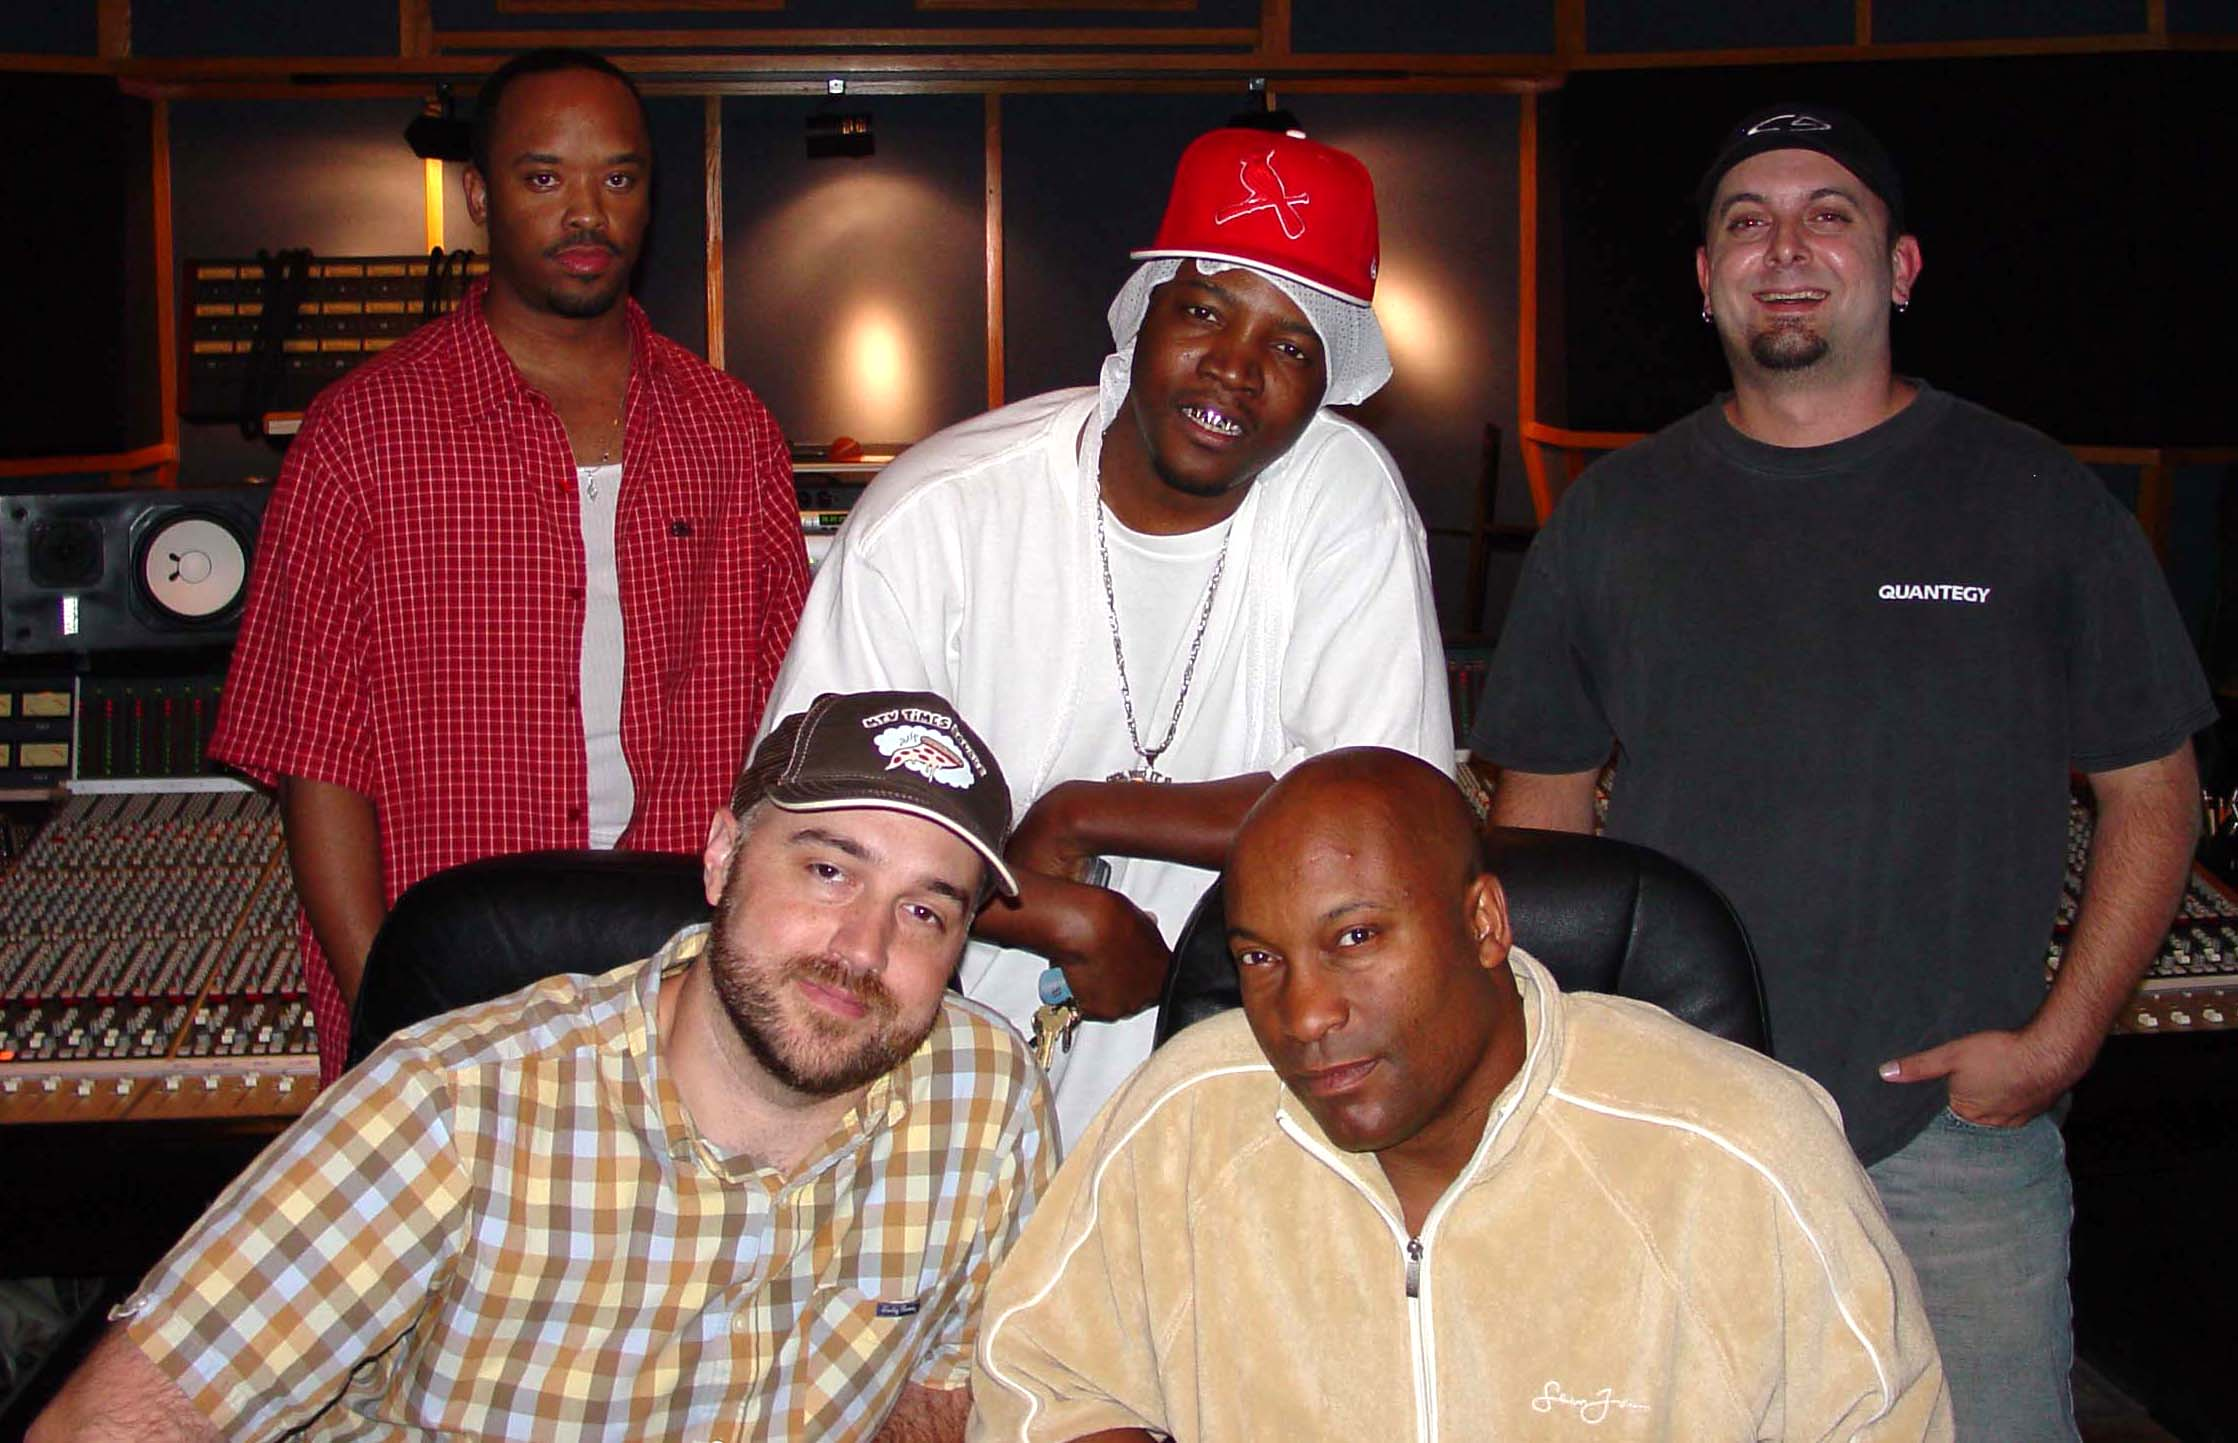 Craig Brewer and John Singleton (front) working on the Black Snake Moan Soundtrack